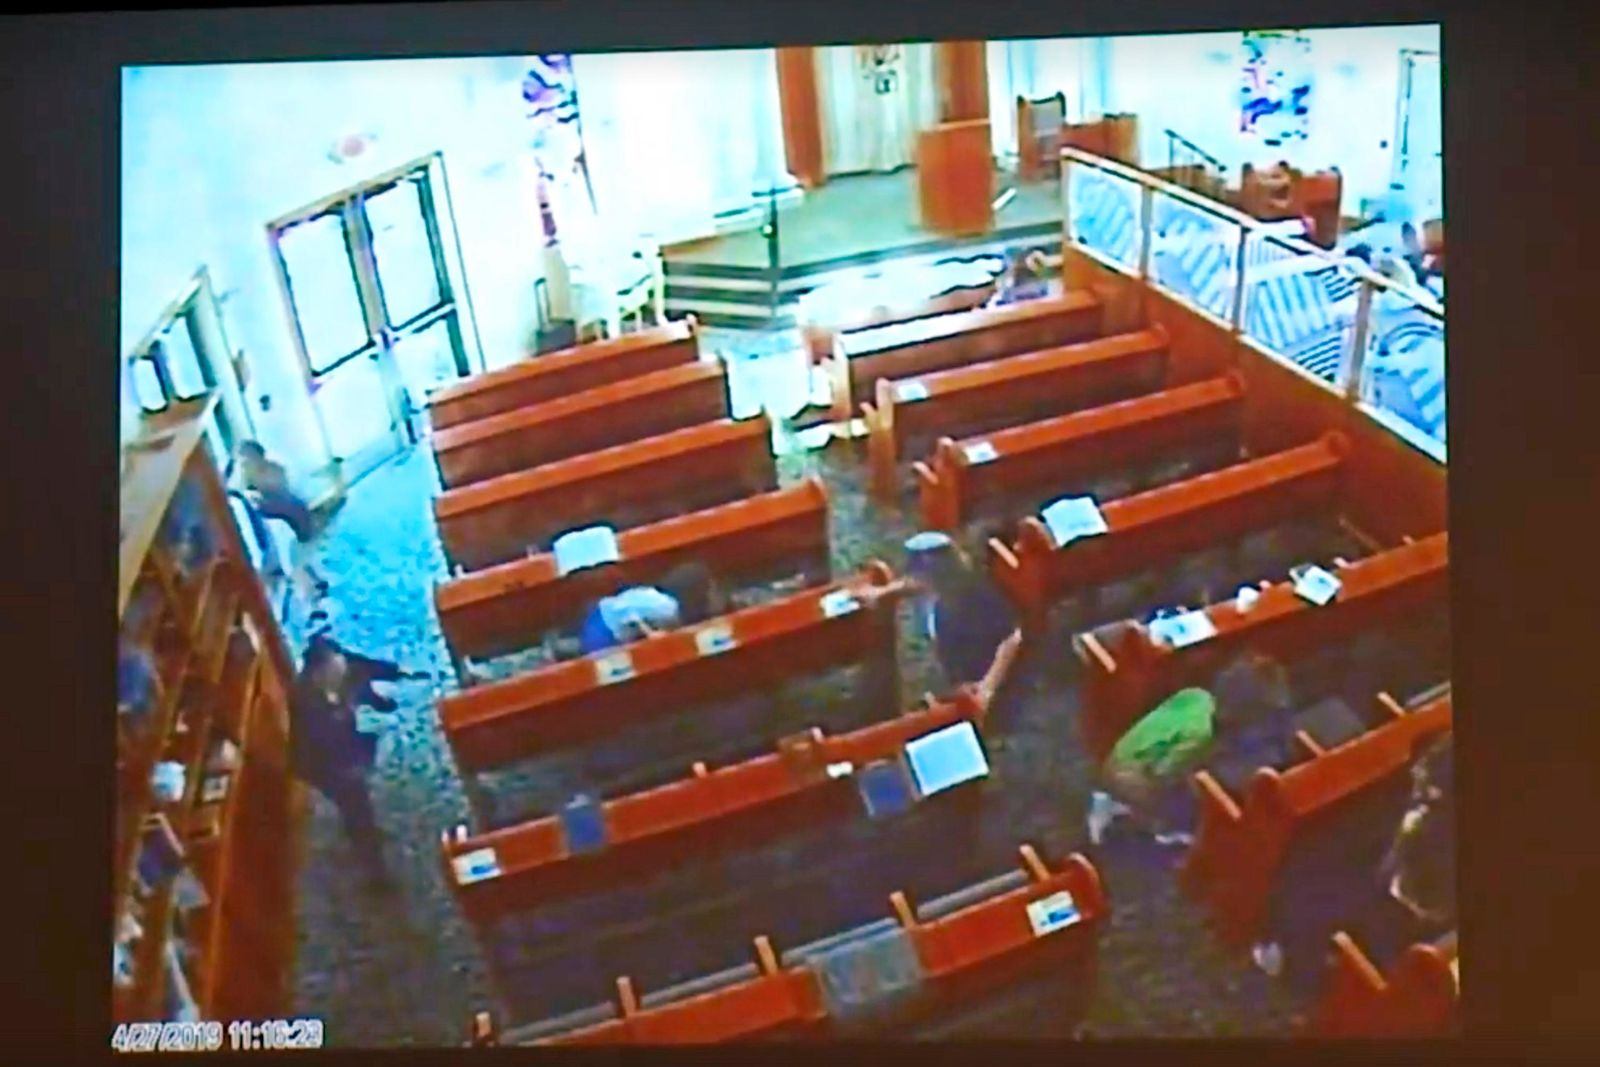 This April 27, 2019 photo from surveillance video at the Chabad of Poway, shown as evidence in the preliminary hearing of John T. Earnest, shows people diving for cover during during what authorities say is Earnest's rampage on the synagogue in Poway, Calif., in court in San Diego, Calif. on Thursday, Sept. 19, 2019. A woman was killed and three other people were wounded in the attack. Earnest has pleaded not guilty to murder, attempted murder and arson tied to a mosque fire. (Chabad of Poway/San Diego Superior Court via AP)